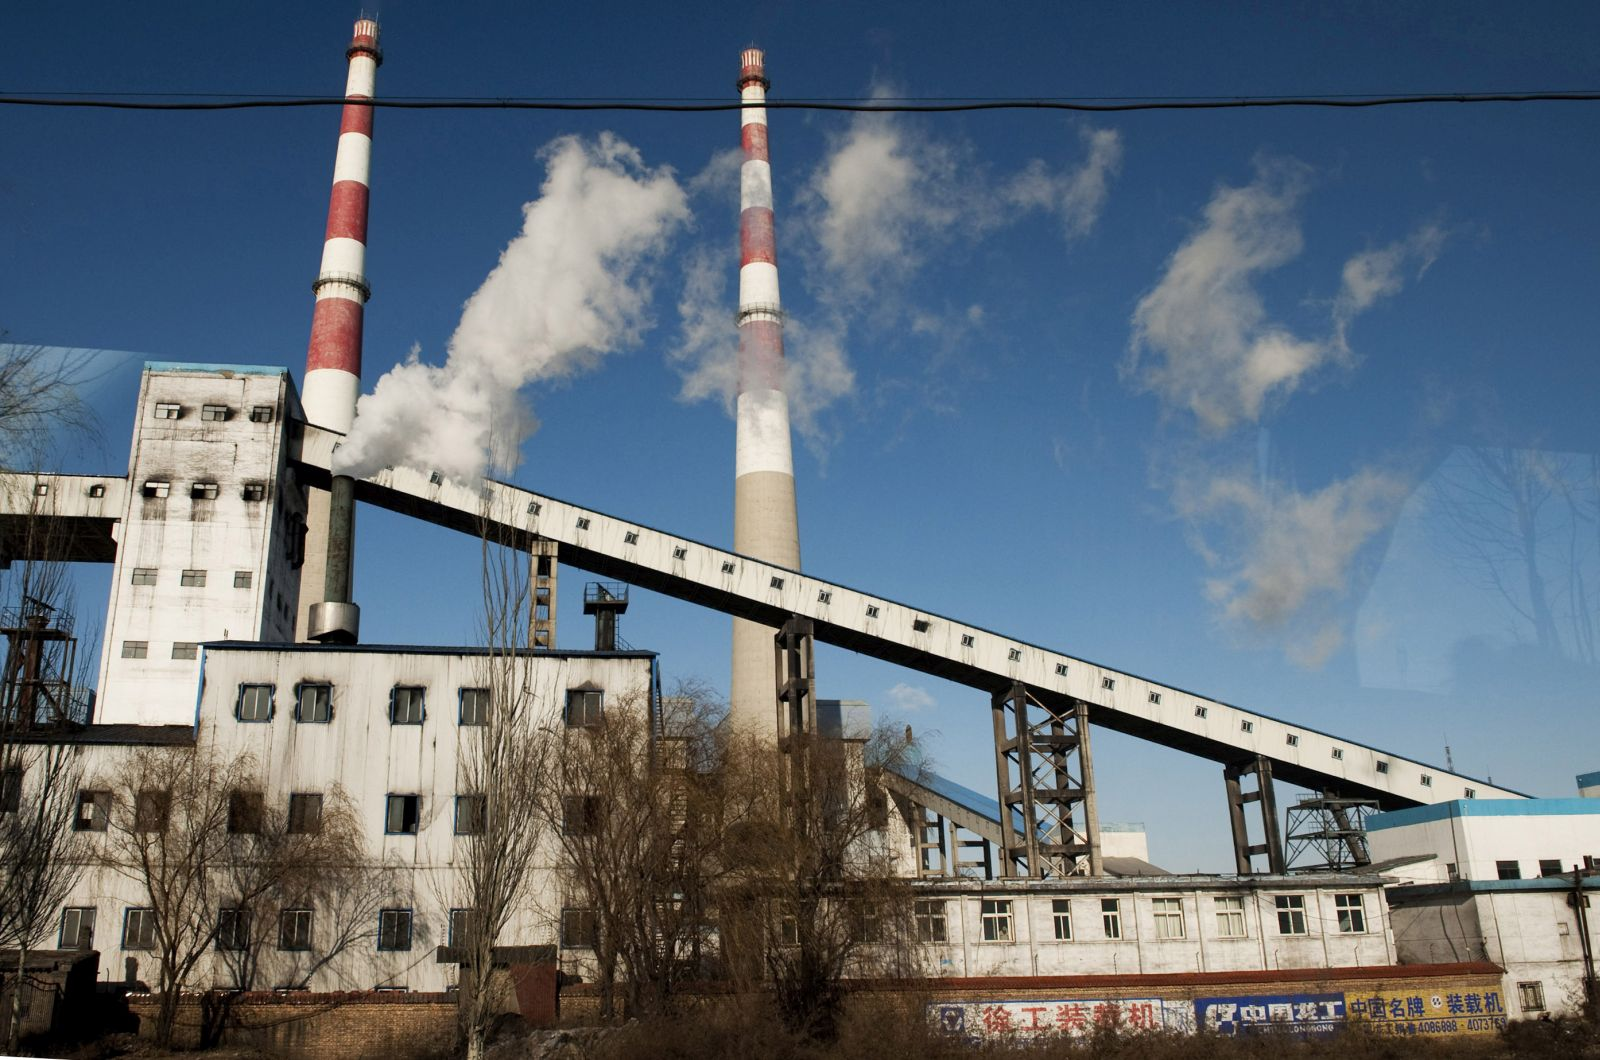 Asia Will Build 500 Coal-Fired Power Plants This Year No